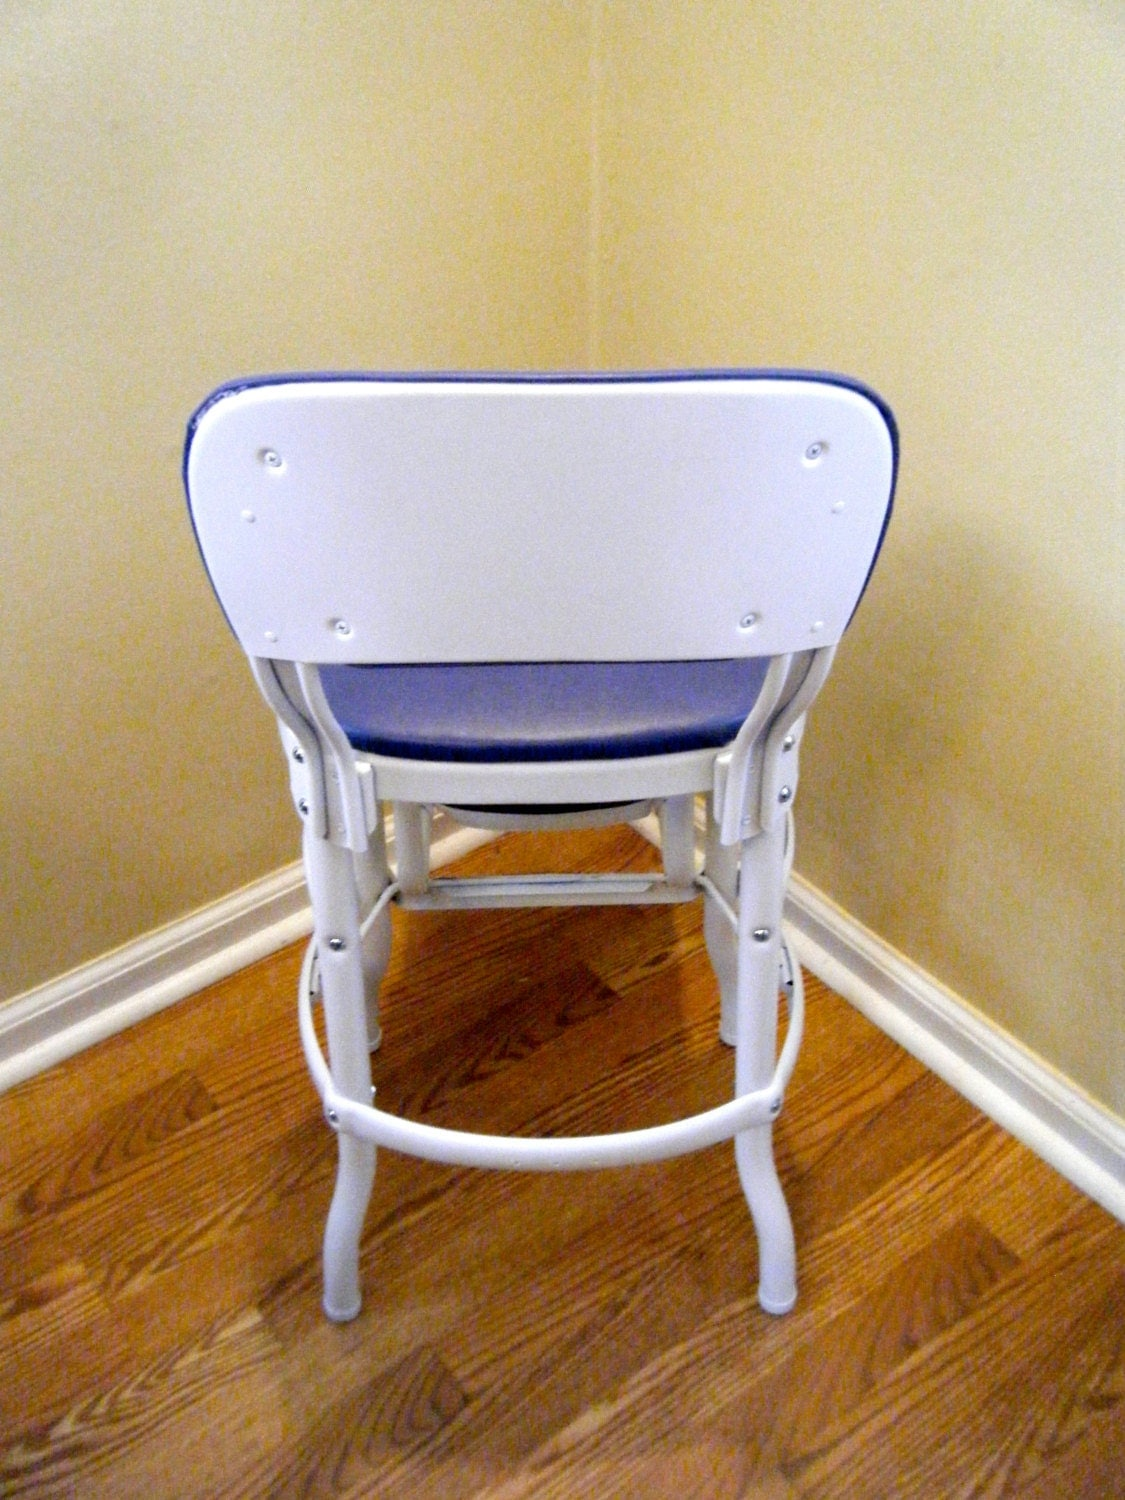 Heavy Duty Original Cosco Chair Step Stool Blue Amp White Retro